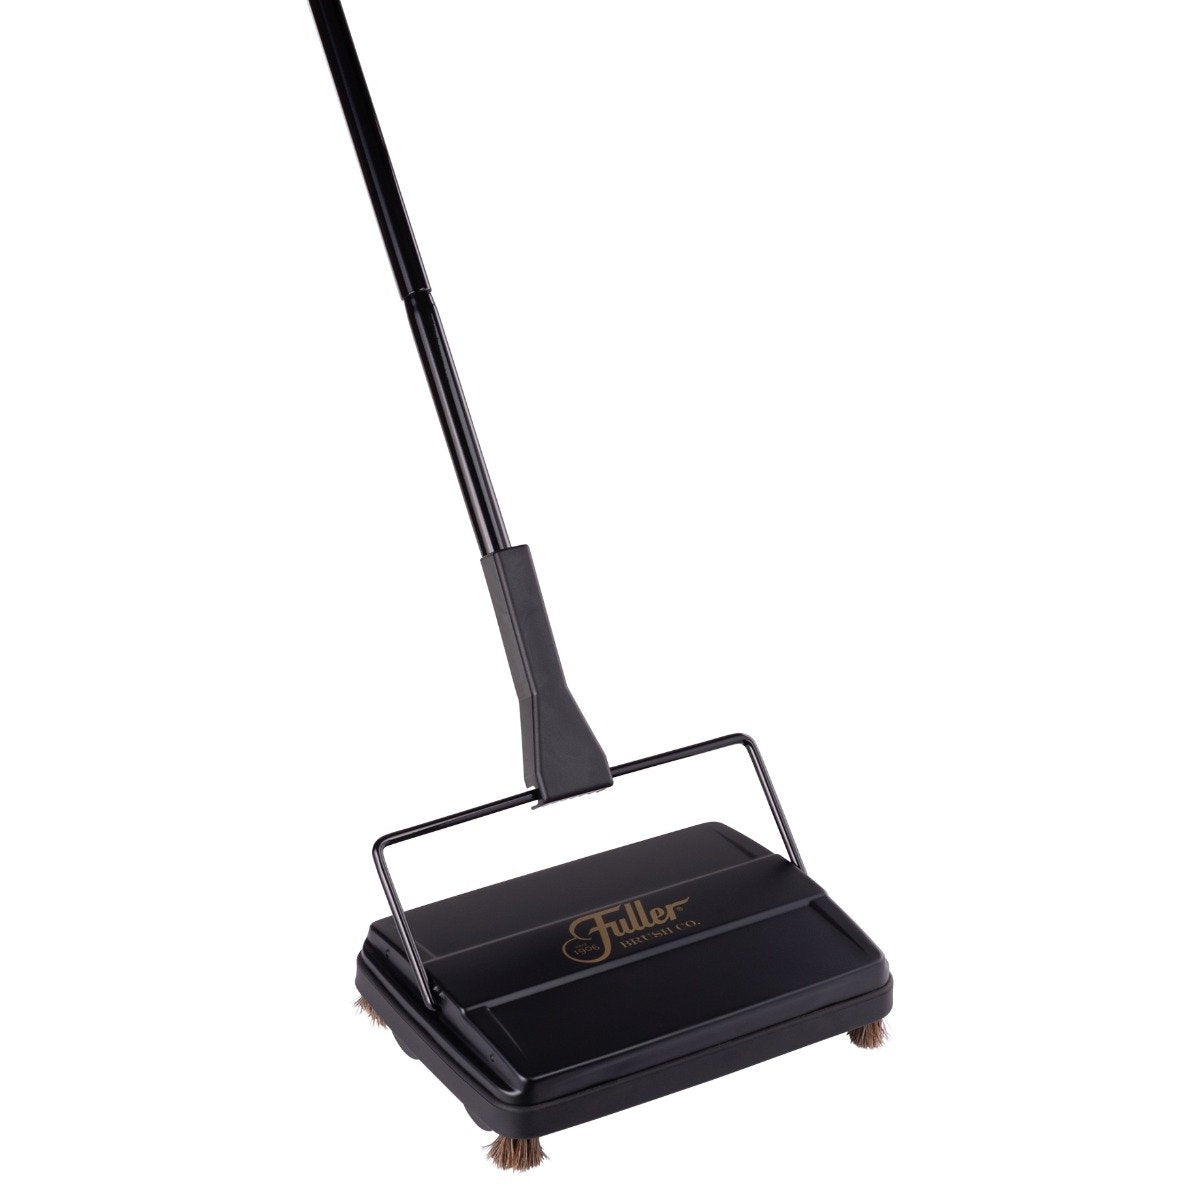 Electrostatic Carpet & Floor Sweeper - Black-Carpet Sweepers-Fuller Brush Company